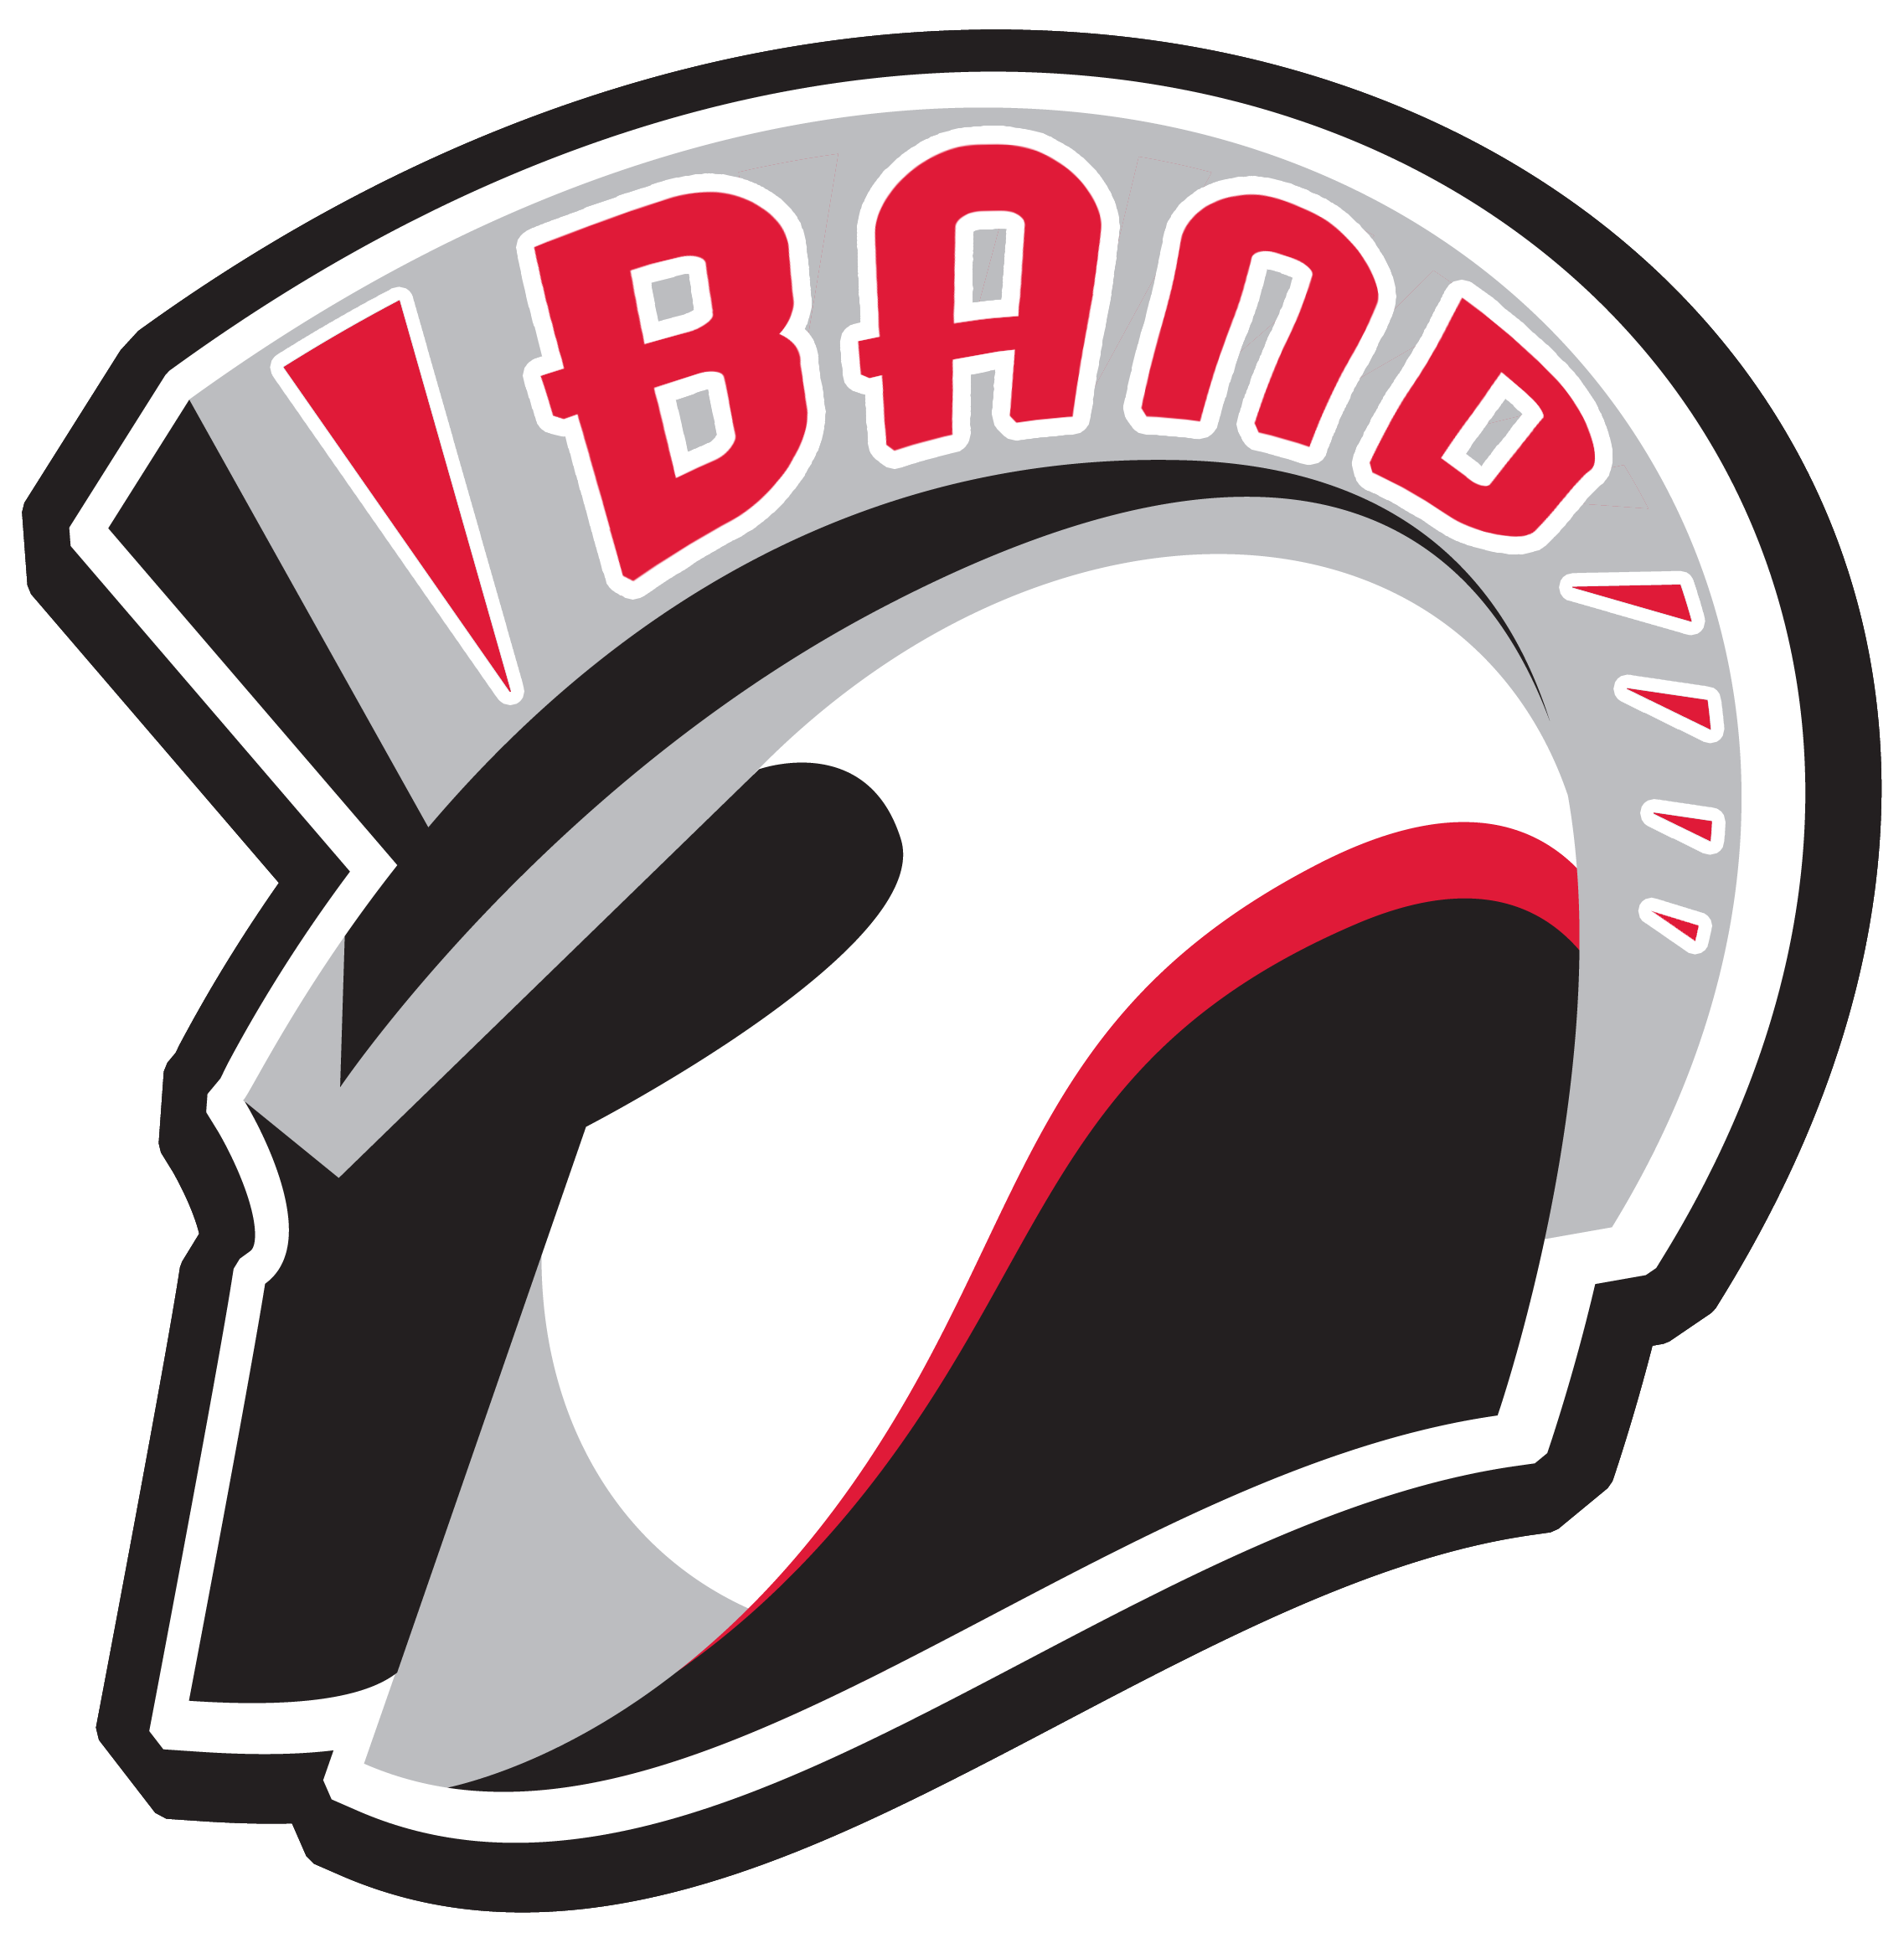 History – UNION BANDS